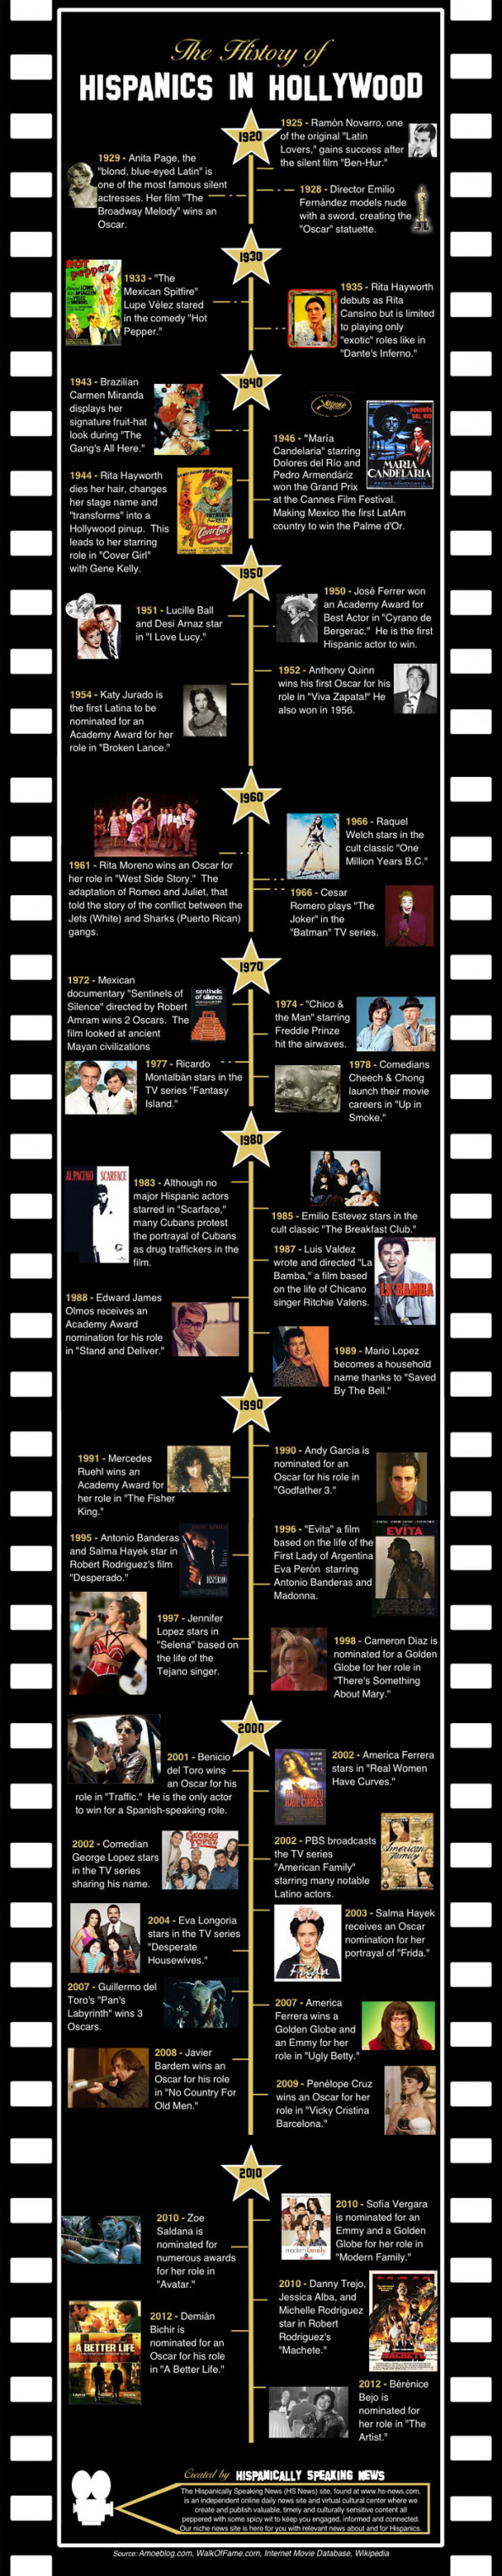 The History of Hispanics in Hollywood Infographic